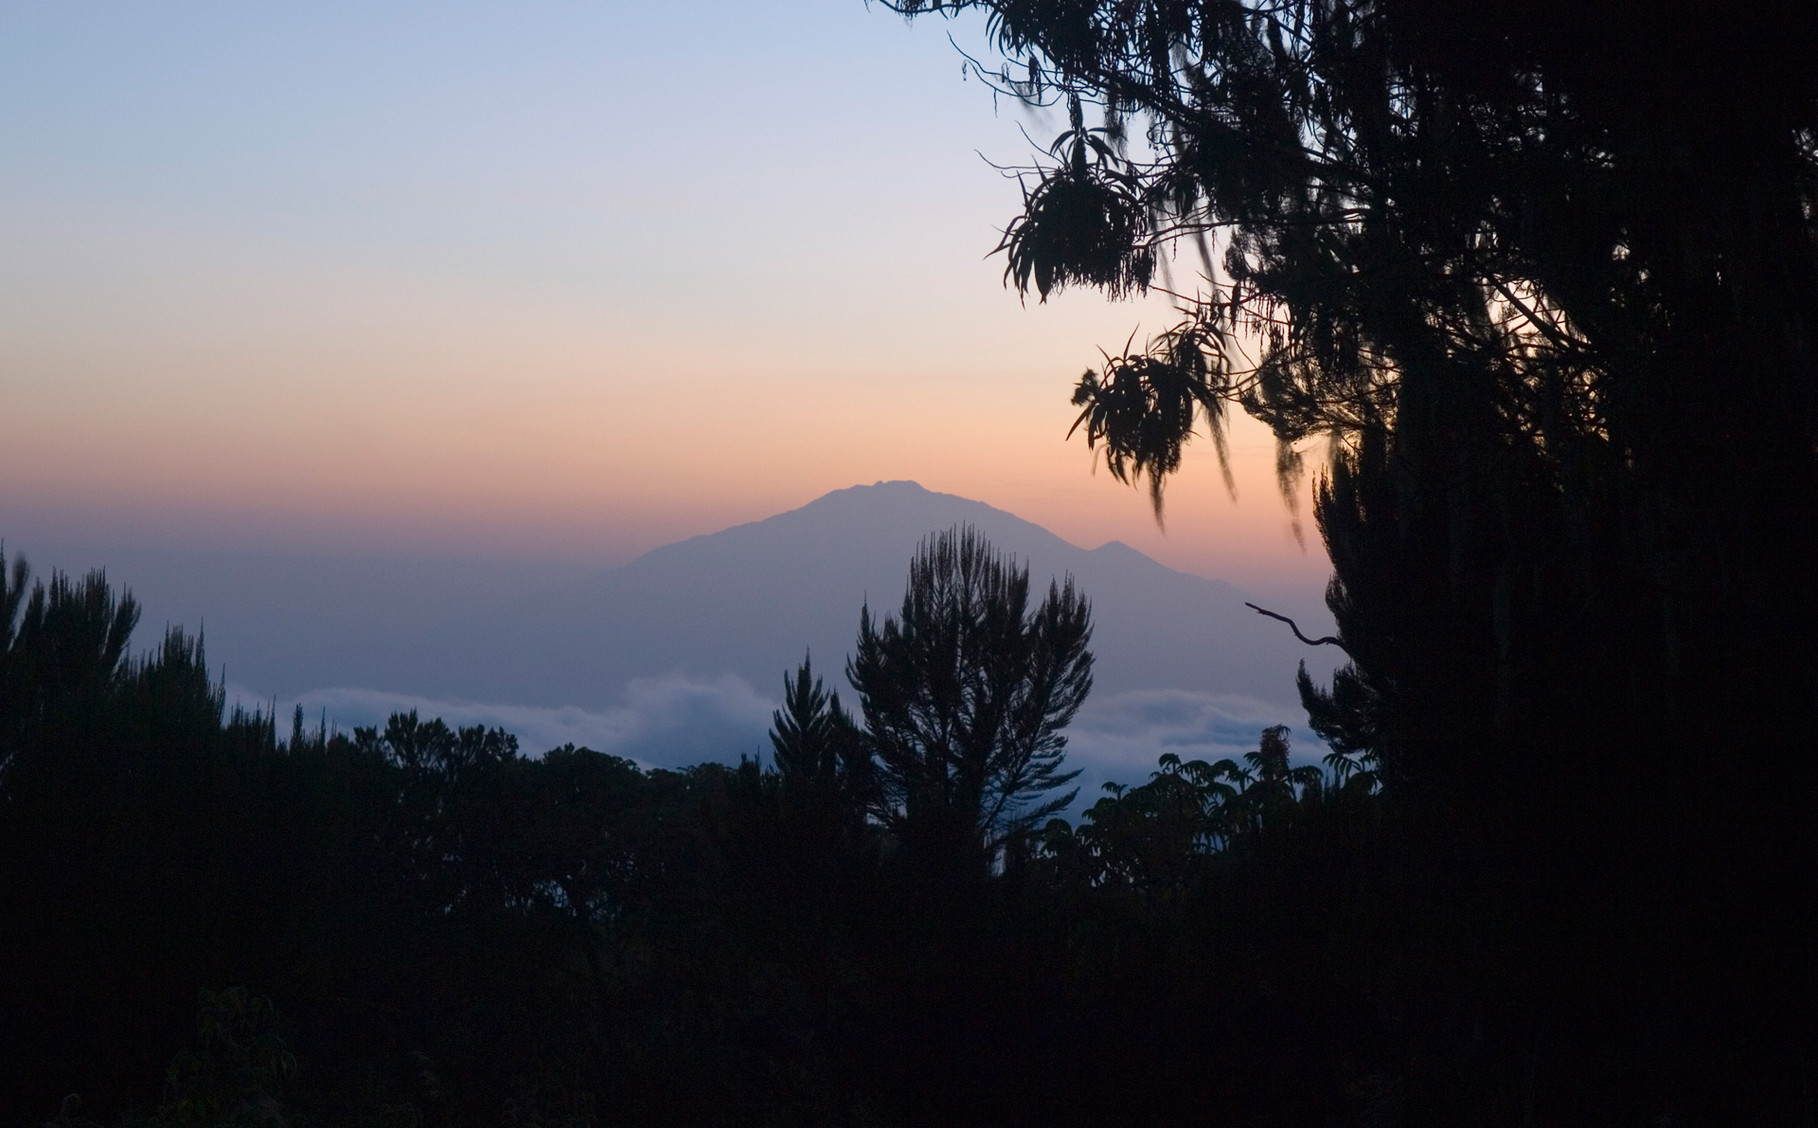 Mount Meru by dusk, 2012